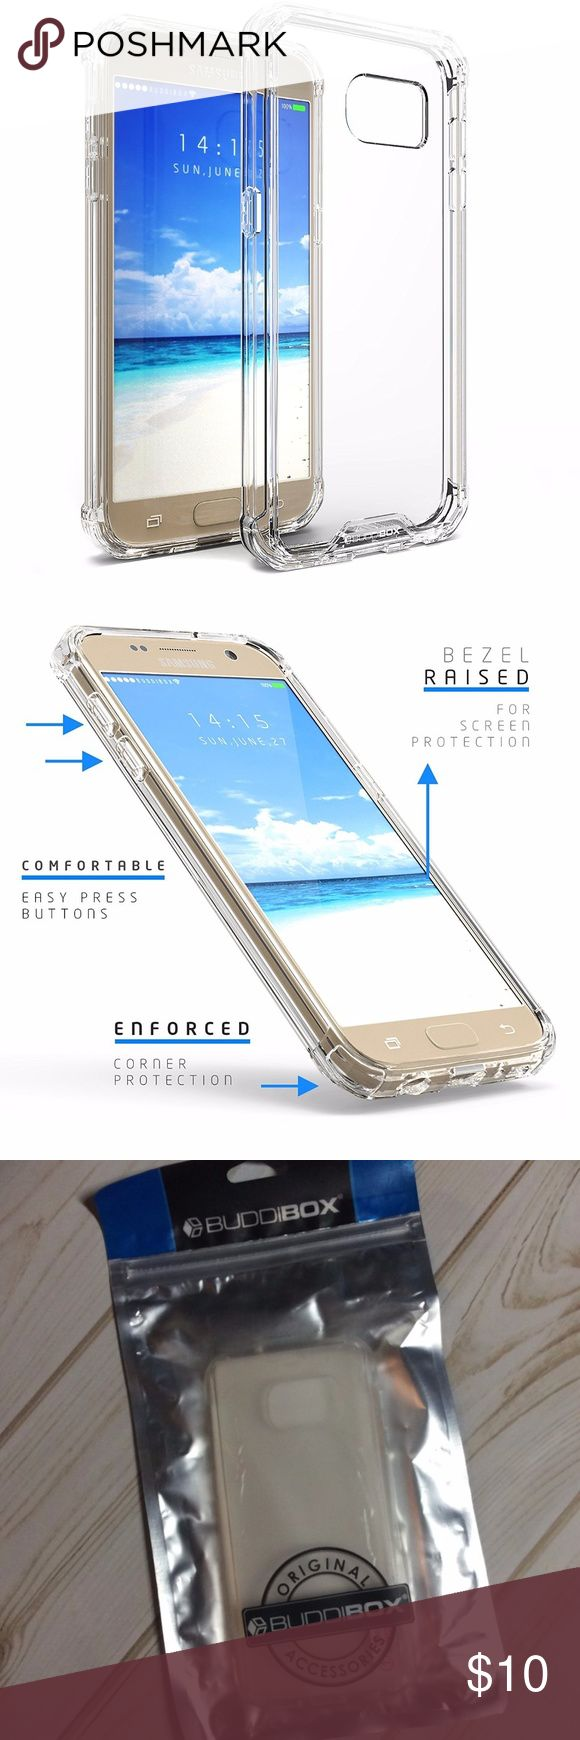 Galaxy S7 Case, BUDDIBOX for Samsung Galaxy S7 Galaxy S7 Case, BUDDIBOX for Samsung Galaxy S7 Case [ICE Series] Scratch Resistant TPU Drop Proof Protective Bumper Case for Samsung Galaxy S7 - Total Clear  box 3 buddibox Accessories Phone Cases